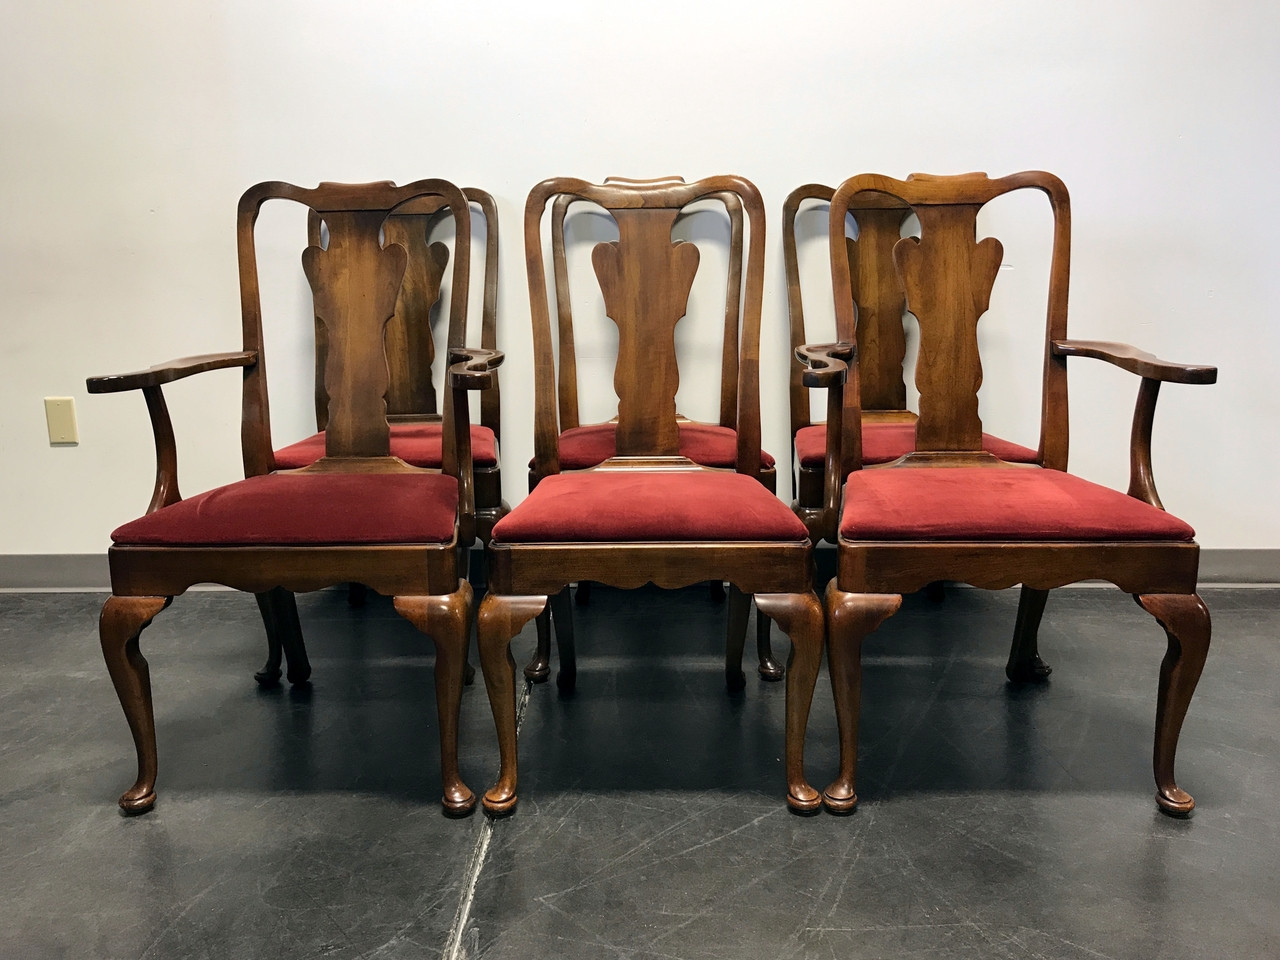 SOLD OUT - STATTON Oxford Antique Cherry Queen Anne Dining ...